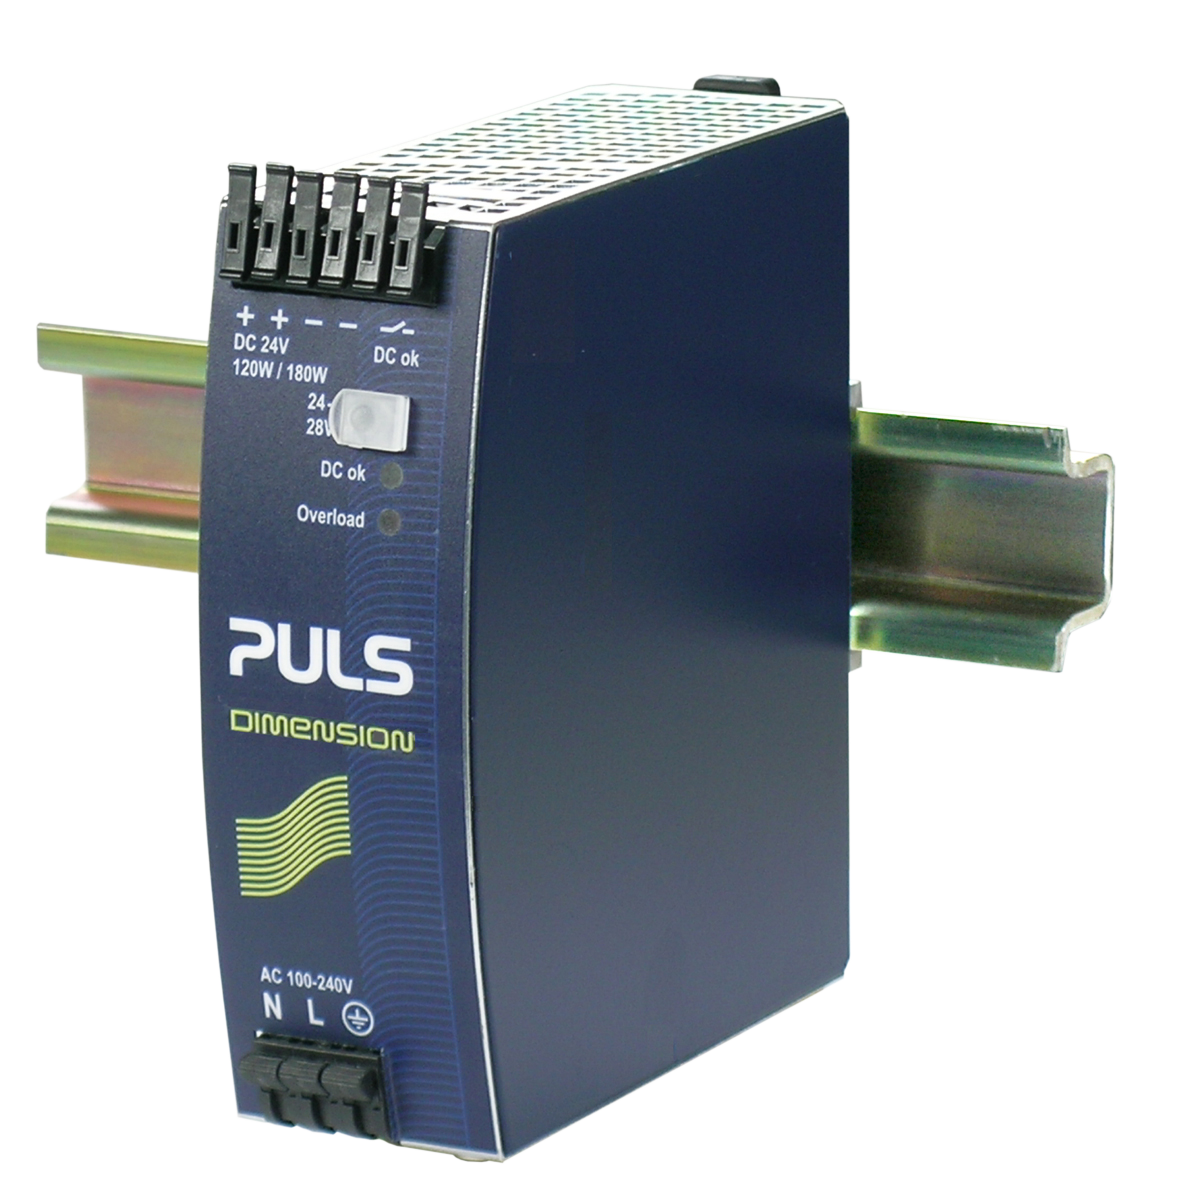 Qs5 241 Din Rail Power Supplies For 1 Phase Systems